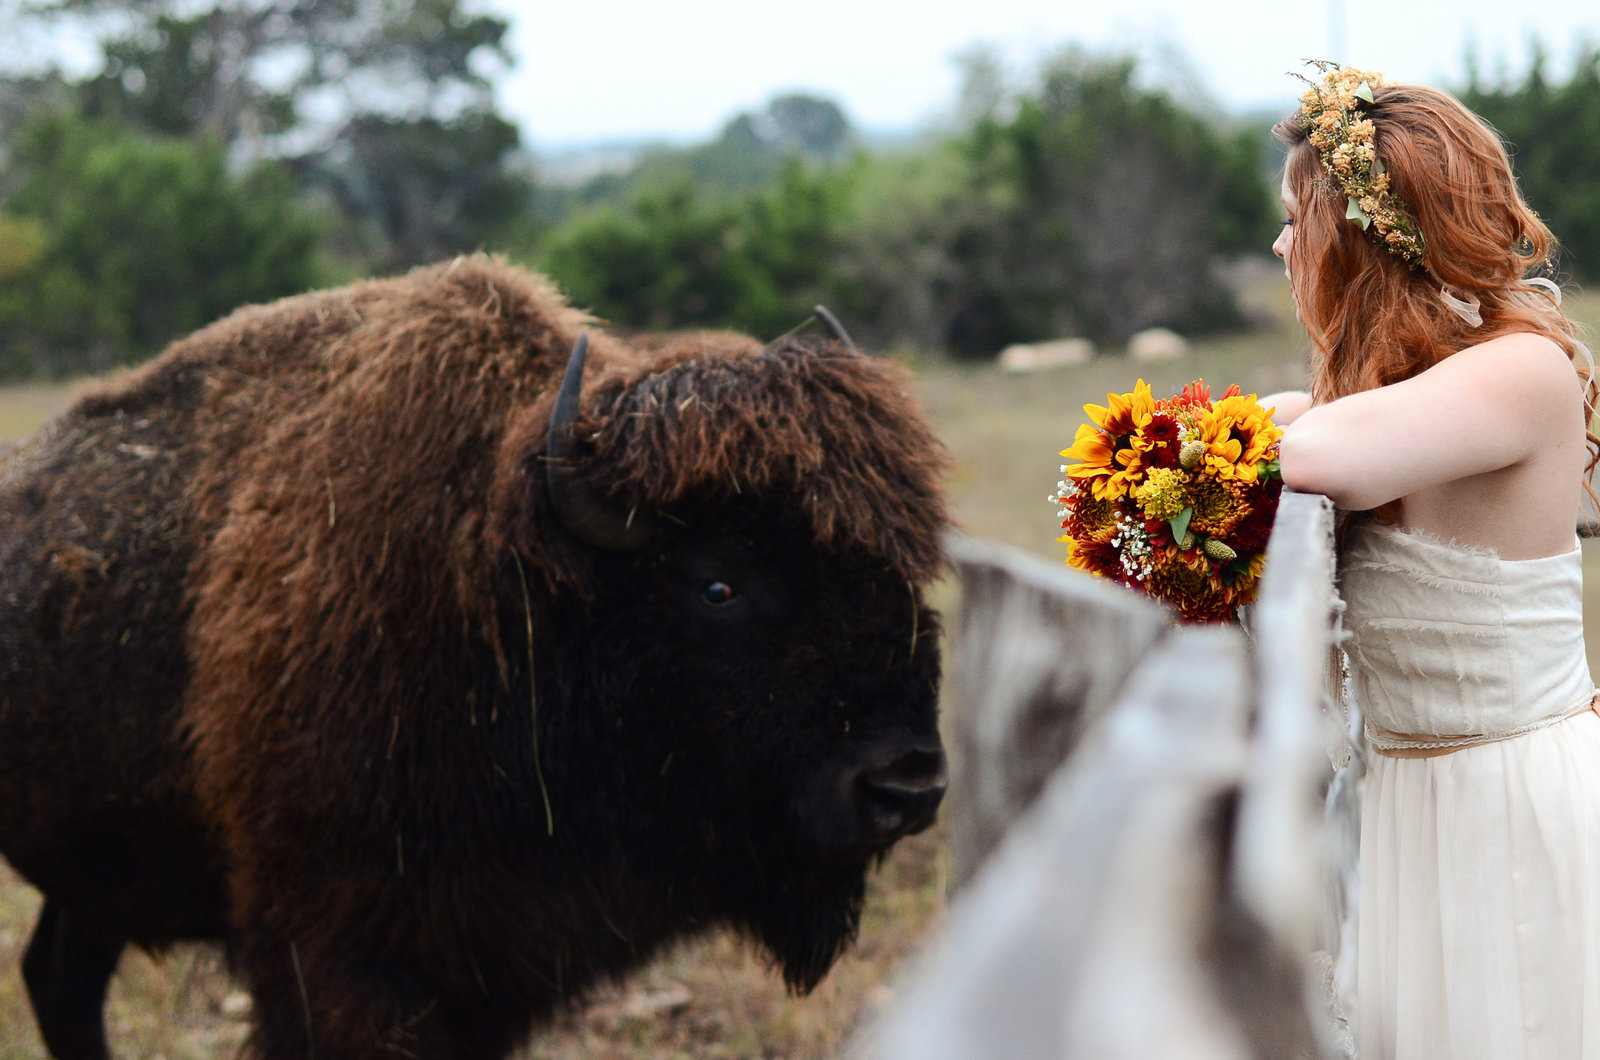 Fall bride with sunflower wedding bouquet and floral crown faces off with a Buffalo at Twisted ranch wedding